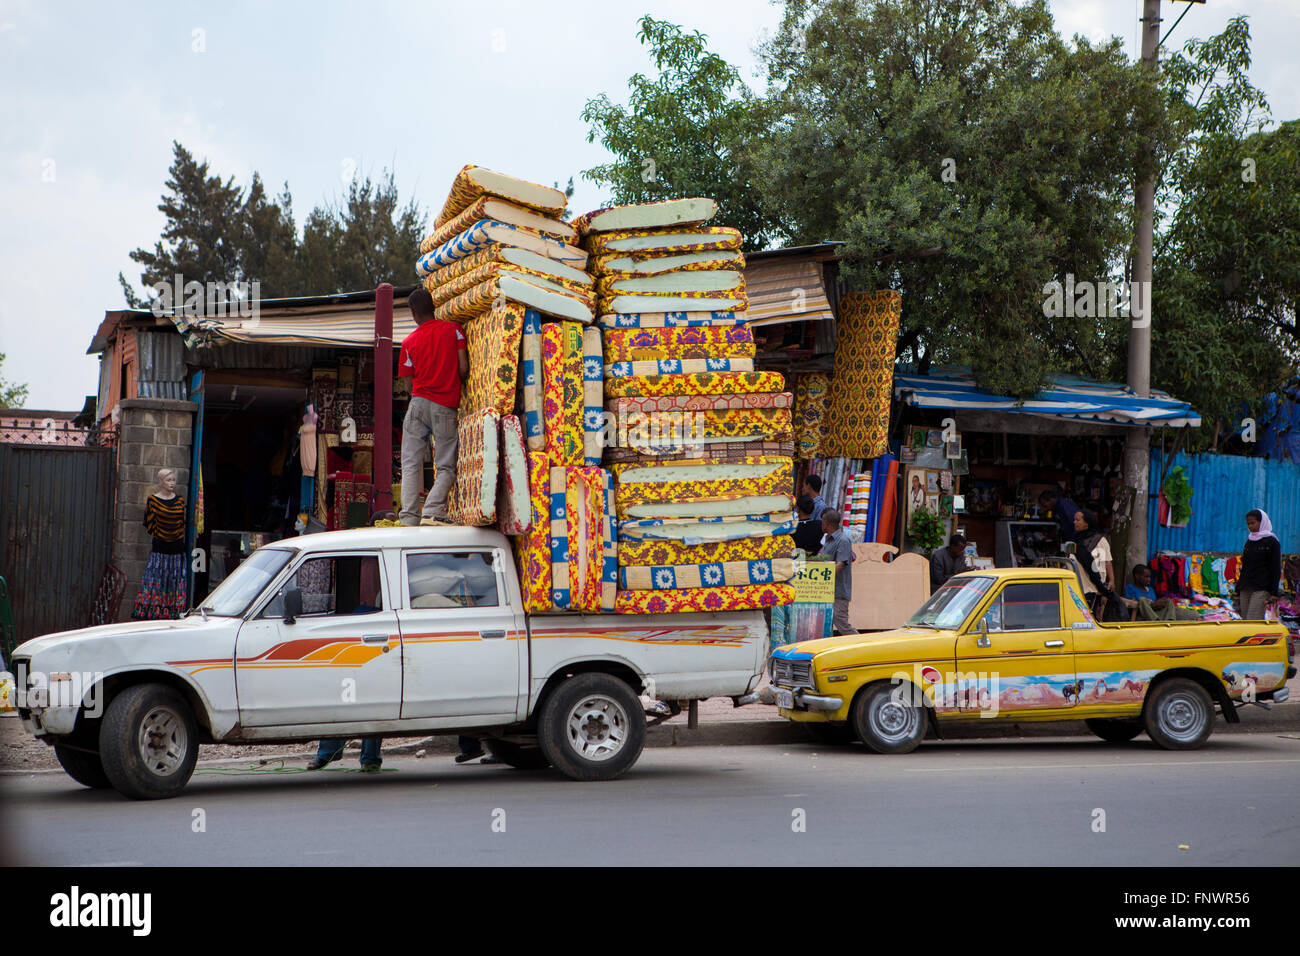 Mattresses piled high on the back of a pickup in Addis Ababa, Ethiopia. - Stock Image